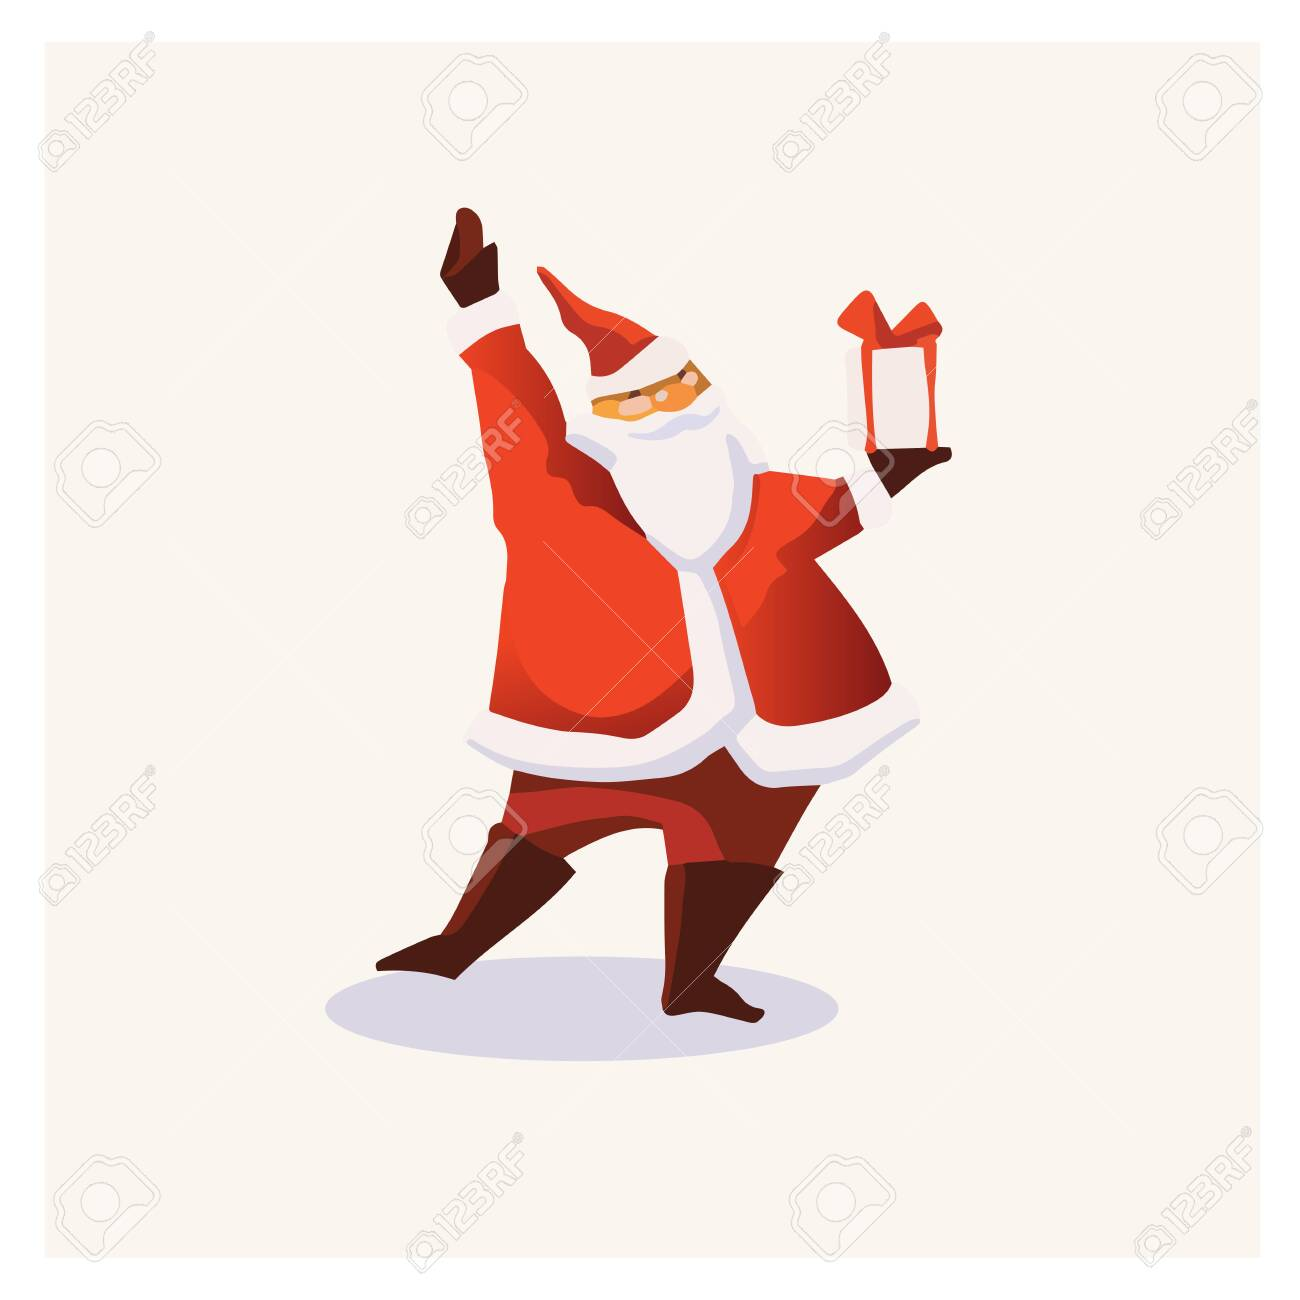 Set of cartoon Christmas illustrations. Funny happy Santa Claus character with gift, bag with presents, waving and greeting. For Christmas cards, banners, tags and labels. - 130910788